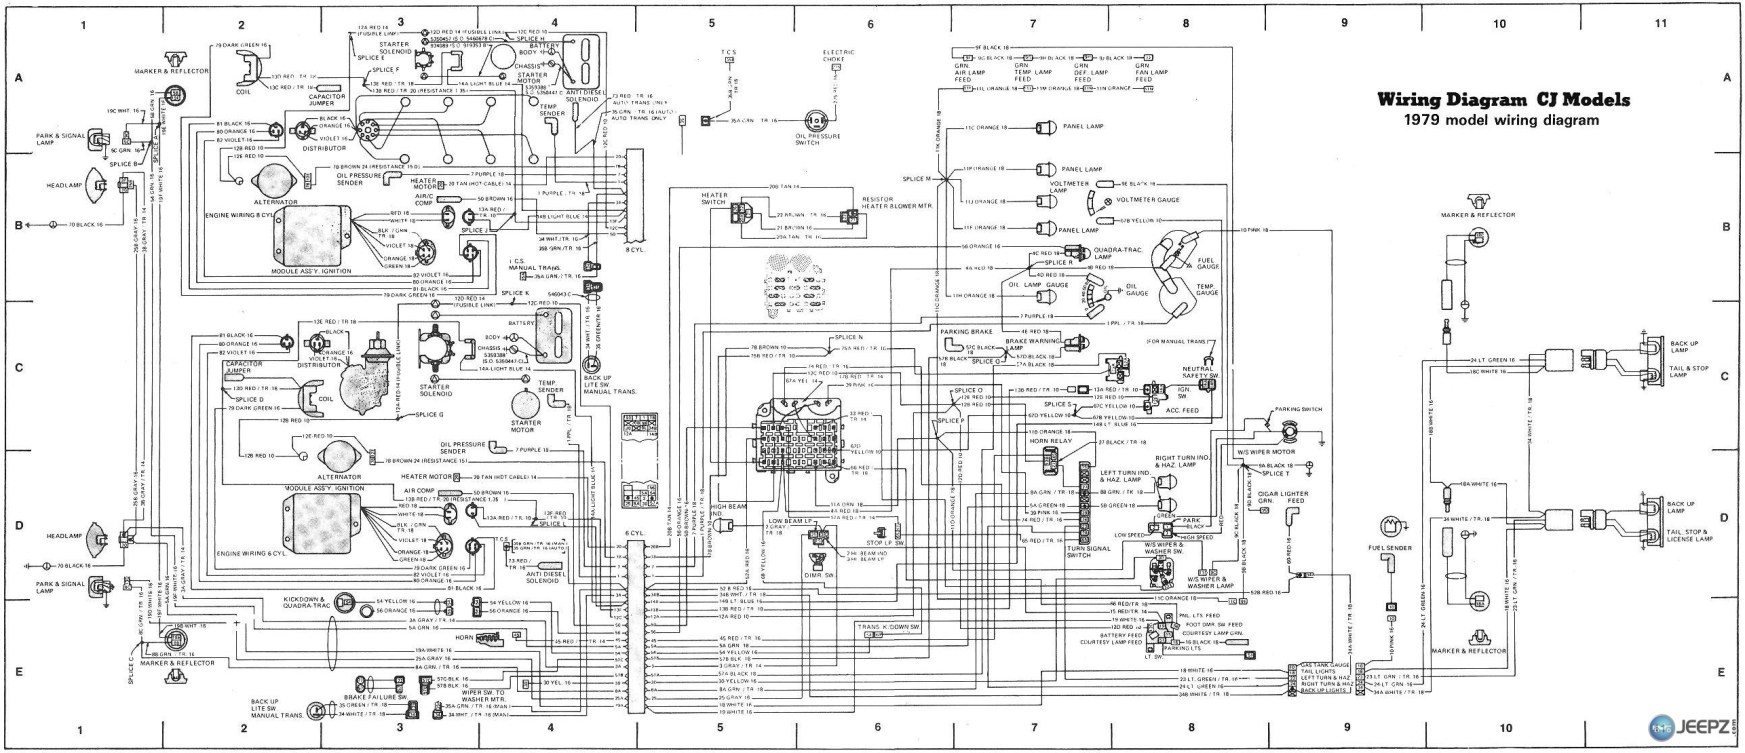 1980 cj5 wiring diagram wiring diagram ignition wiring diagram for 1985 jeep cj7 image